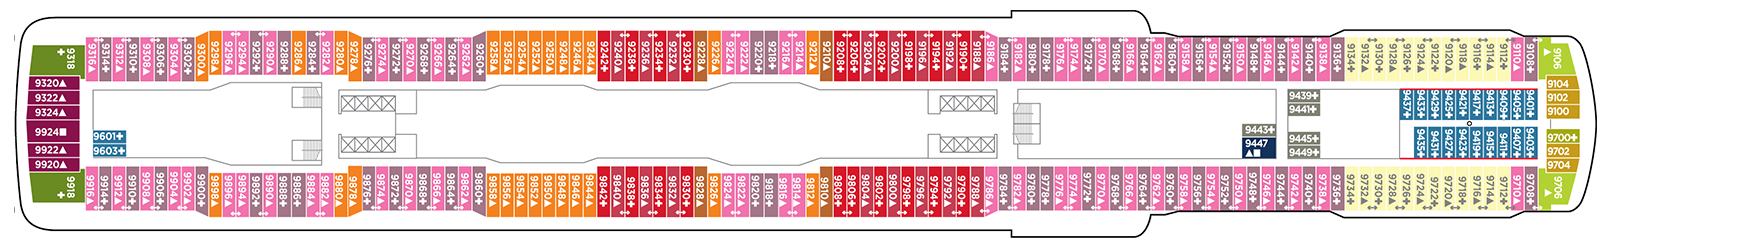 Norwegian Cruise Line Norwegian Escape Deck Plans Deck 9.png